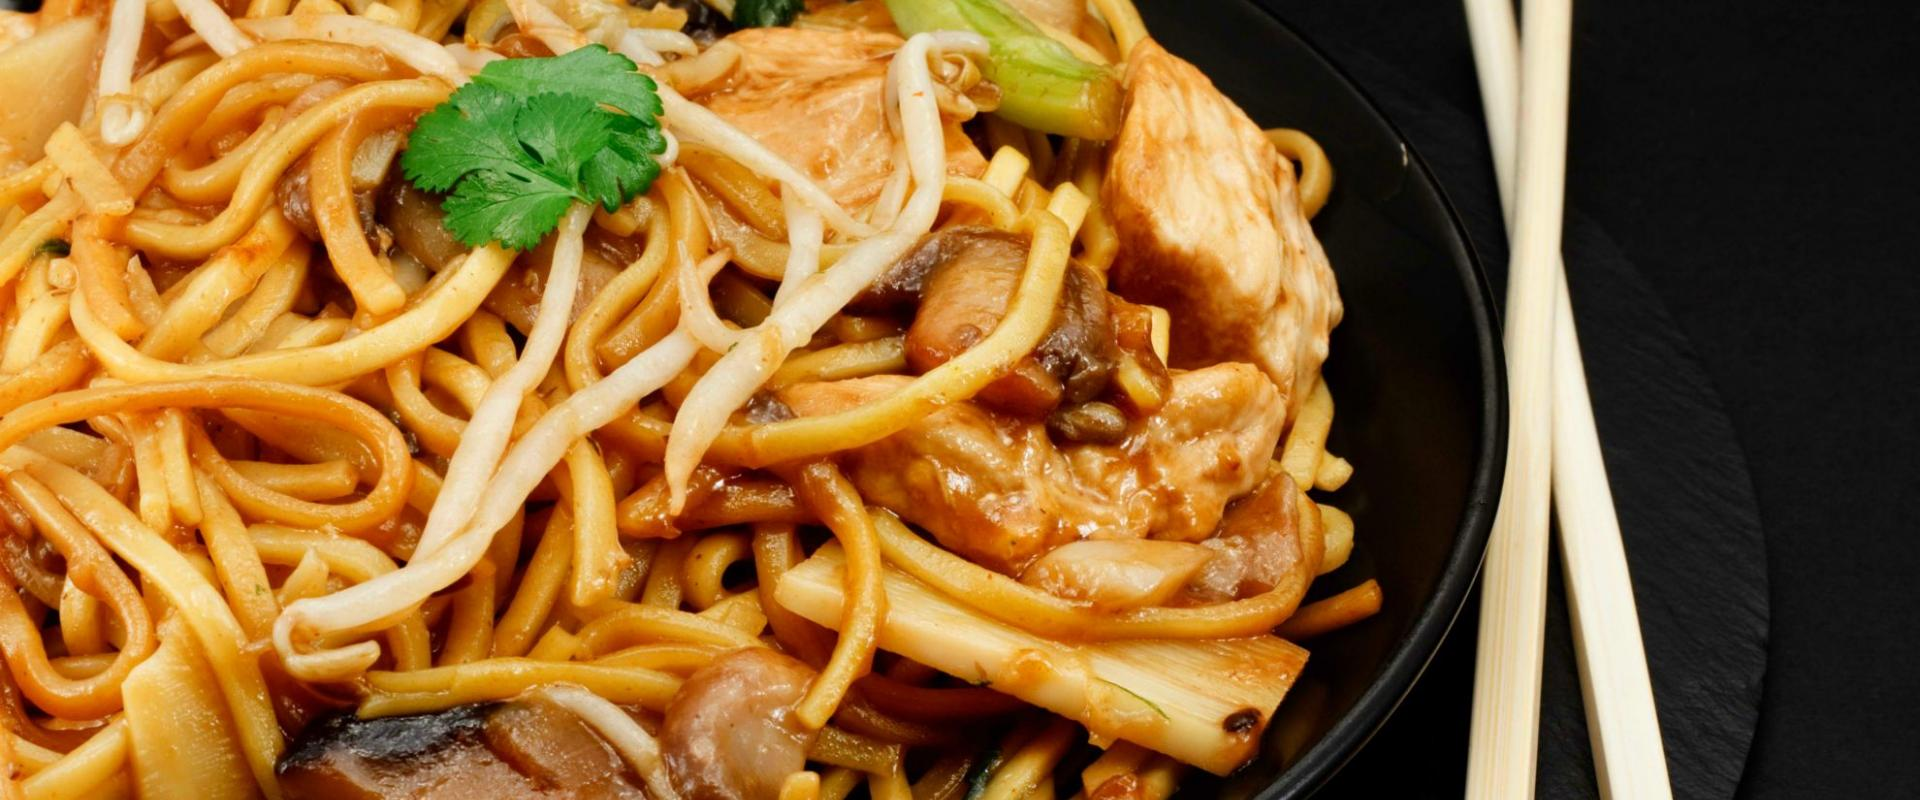 Chow-Mein-Dishes.jpg